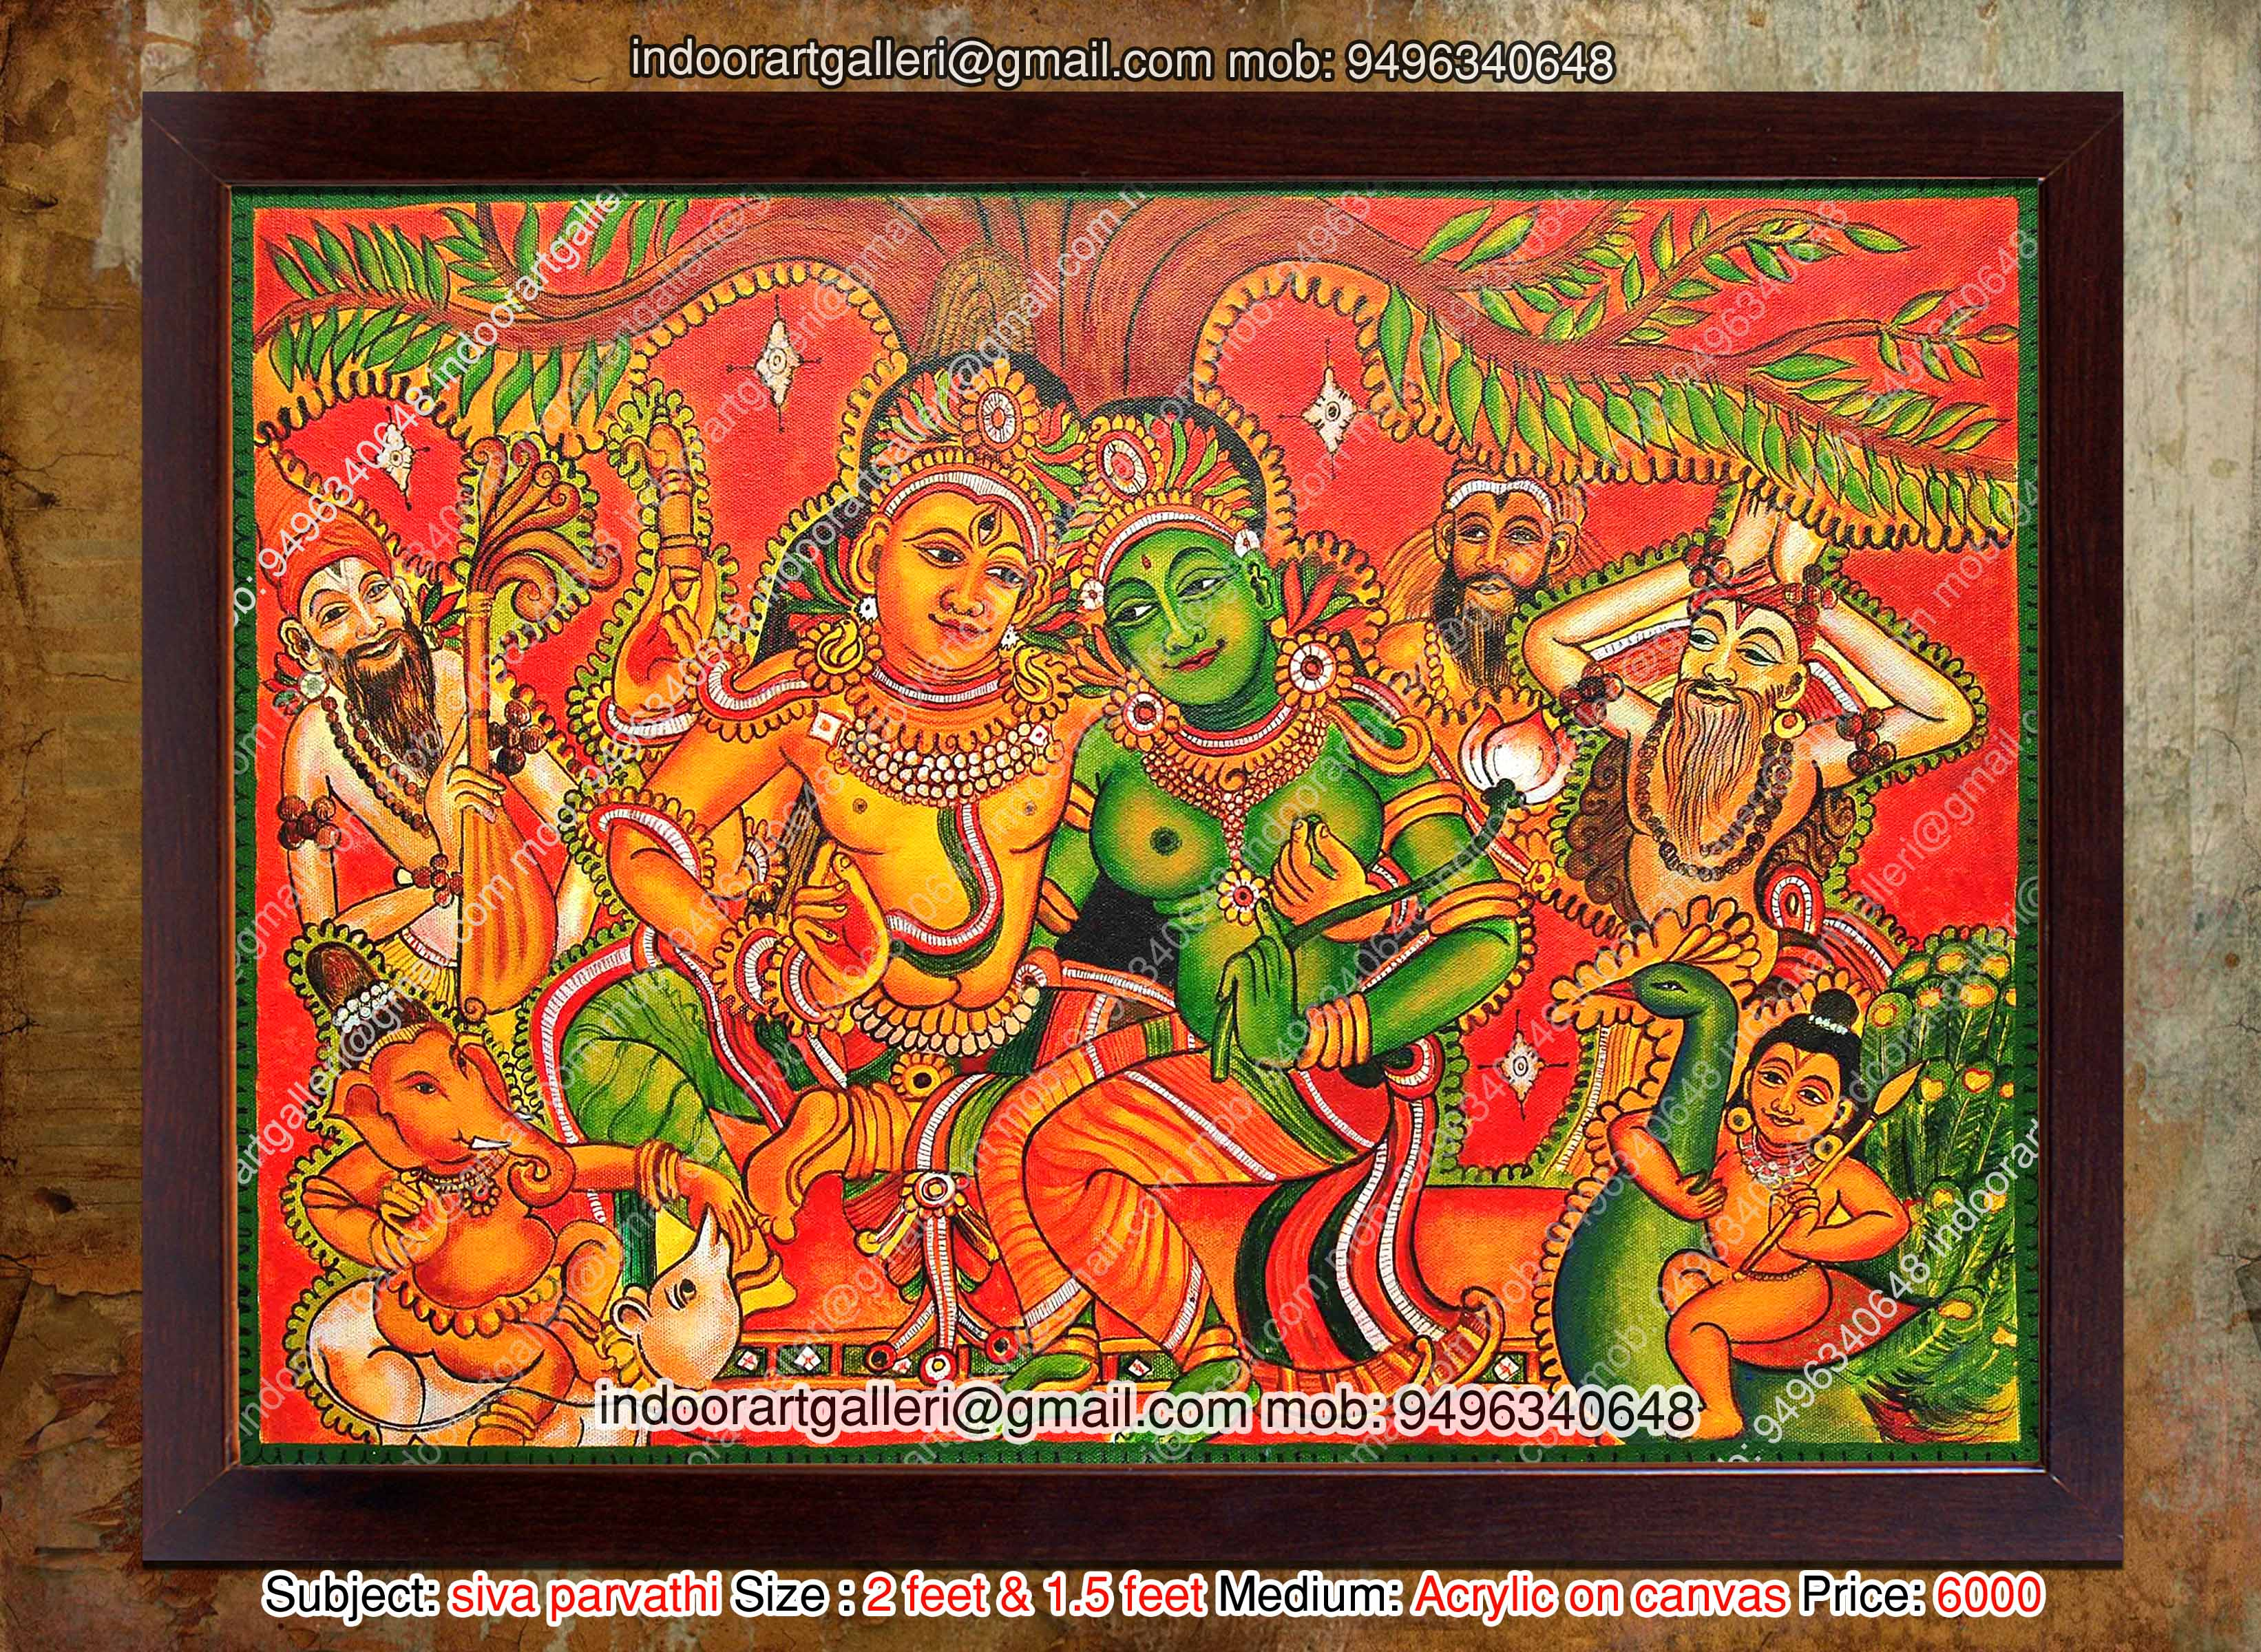 Siva parvathi mural painting by indoorartgalleri on deviantart for Buy kerala mural paintings online